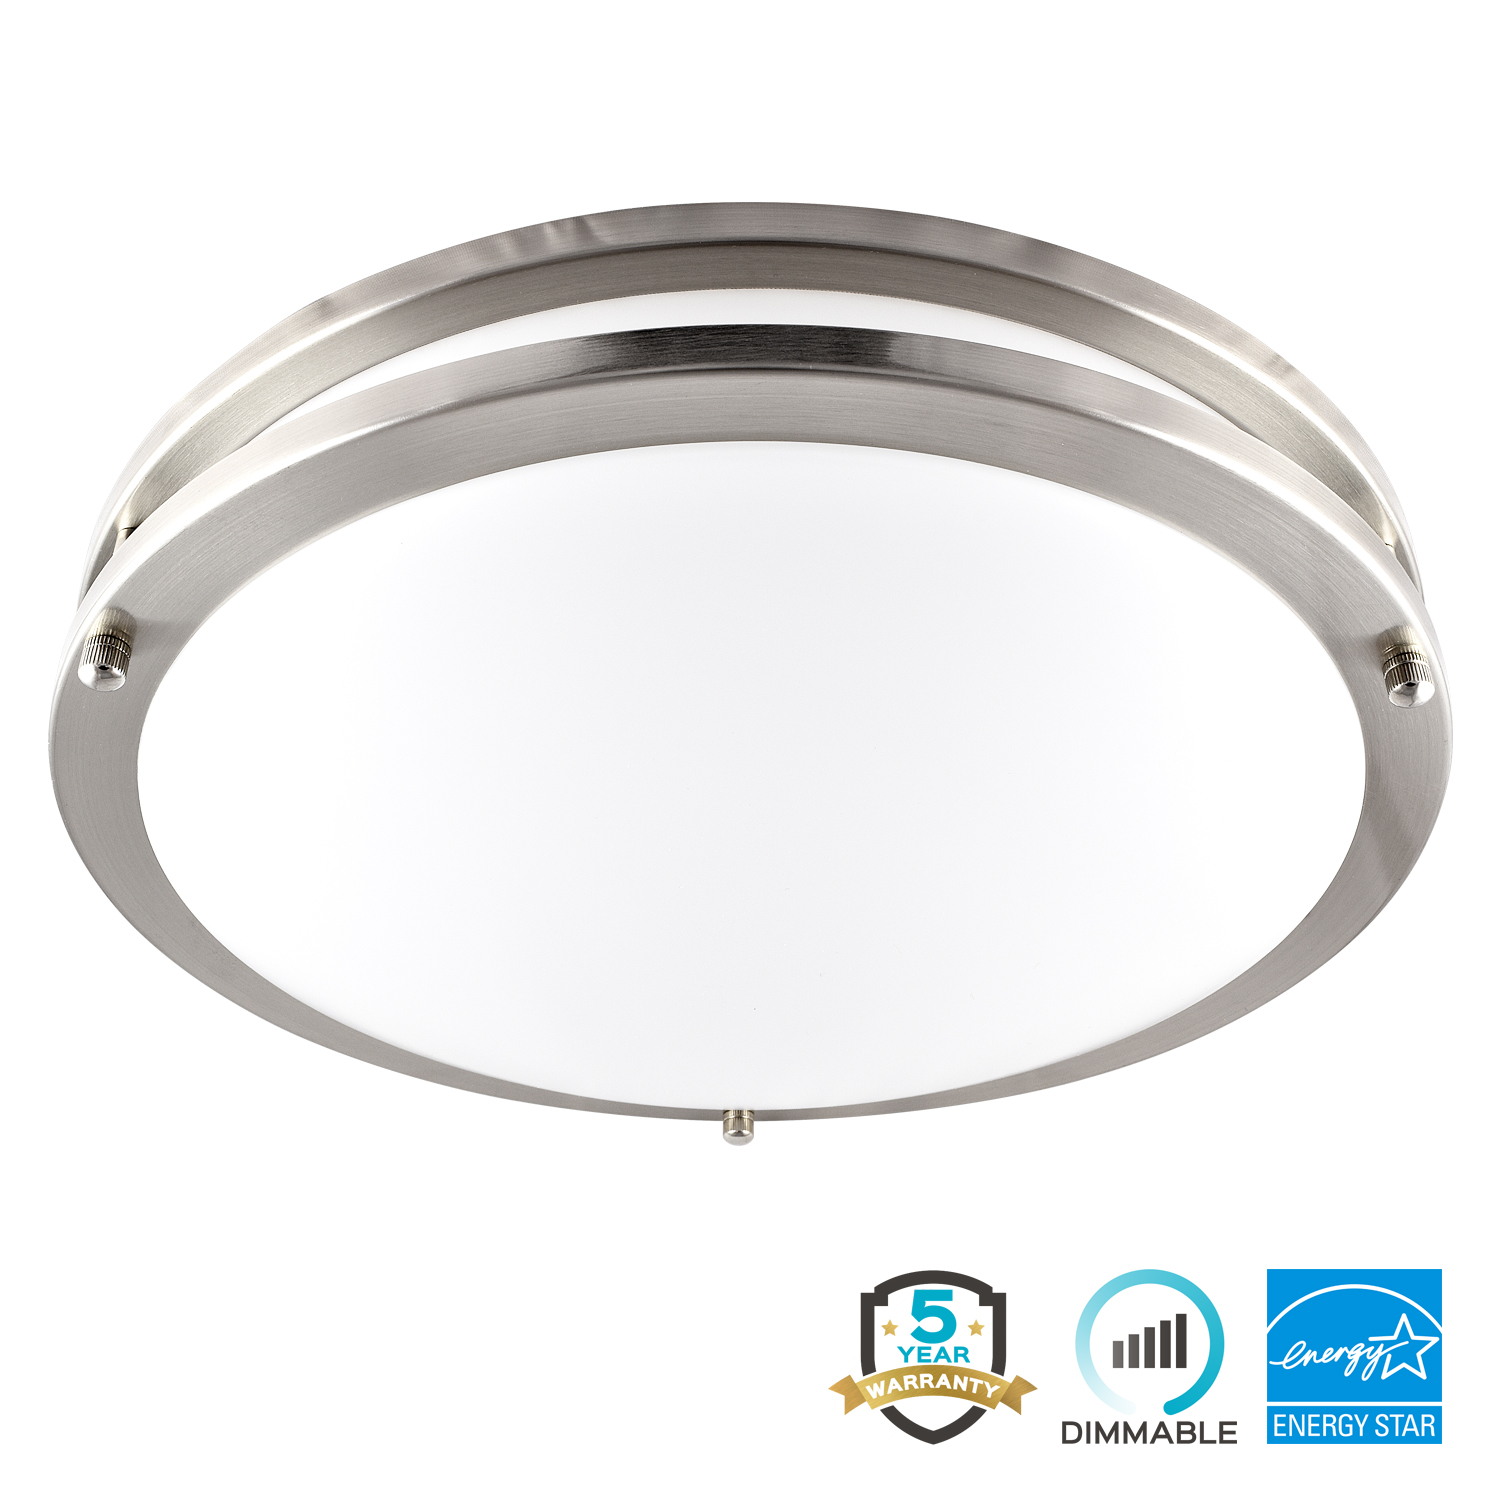 Luxrite LED Flush Mount Ceiling Light, 14 Inch, 22W, 3000K (Soft White), Dimmable, 1652 Lumens, Ceiling Light Fixture,... by Luxrite